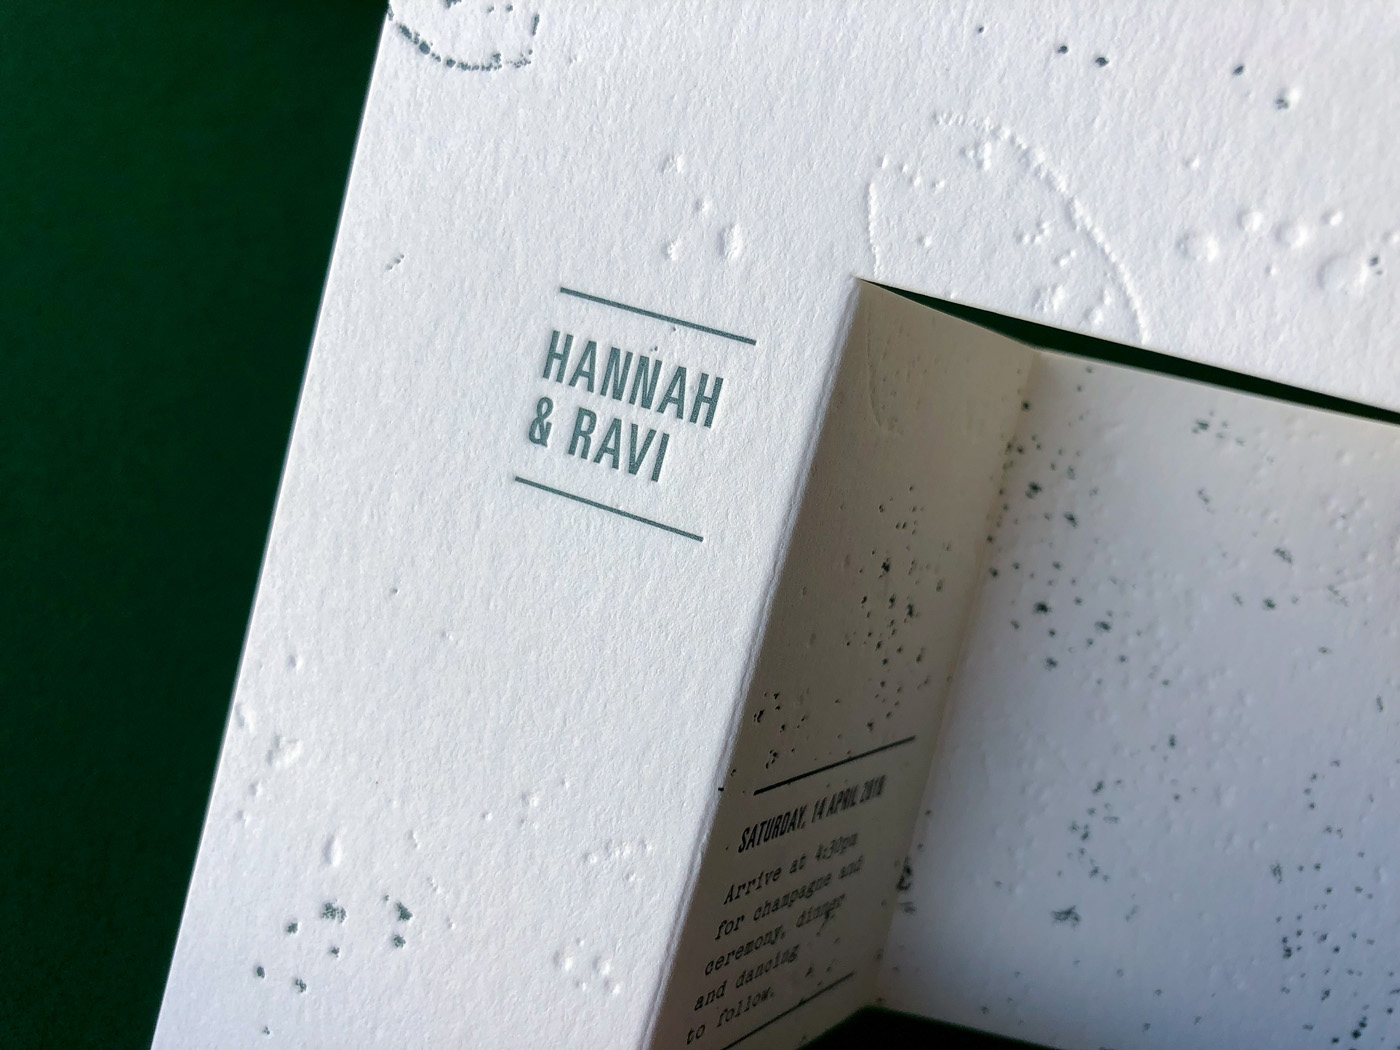 Unique papercraft wedding invitations letterpress printed and design in Australia for Hannah and Ravi on Wild 4